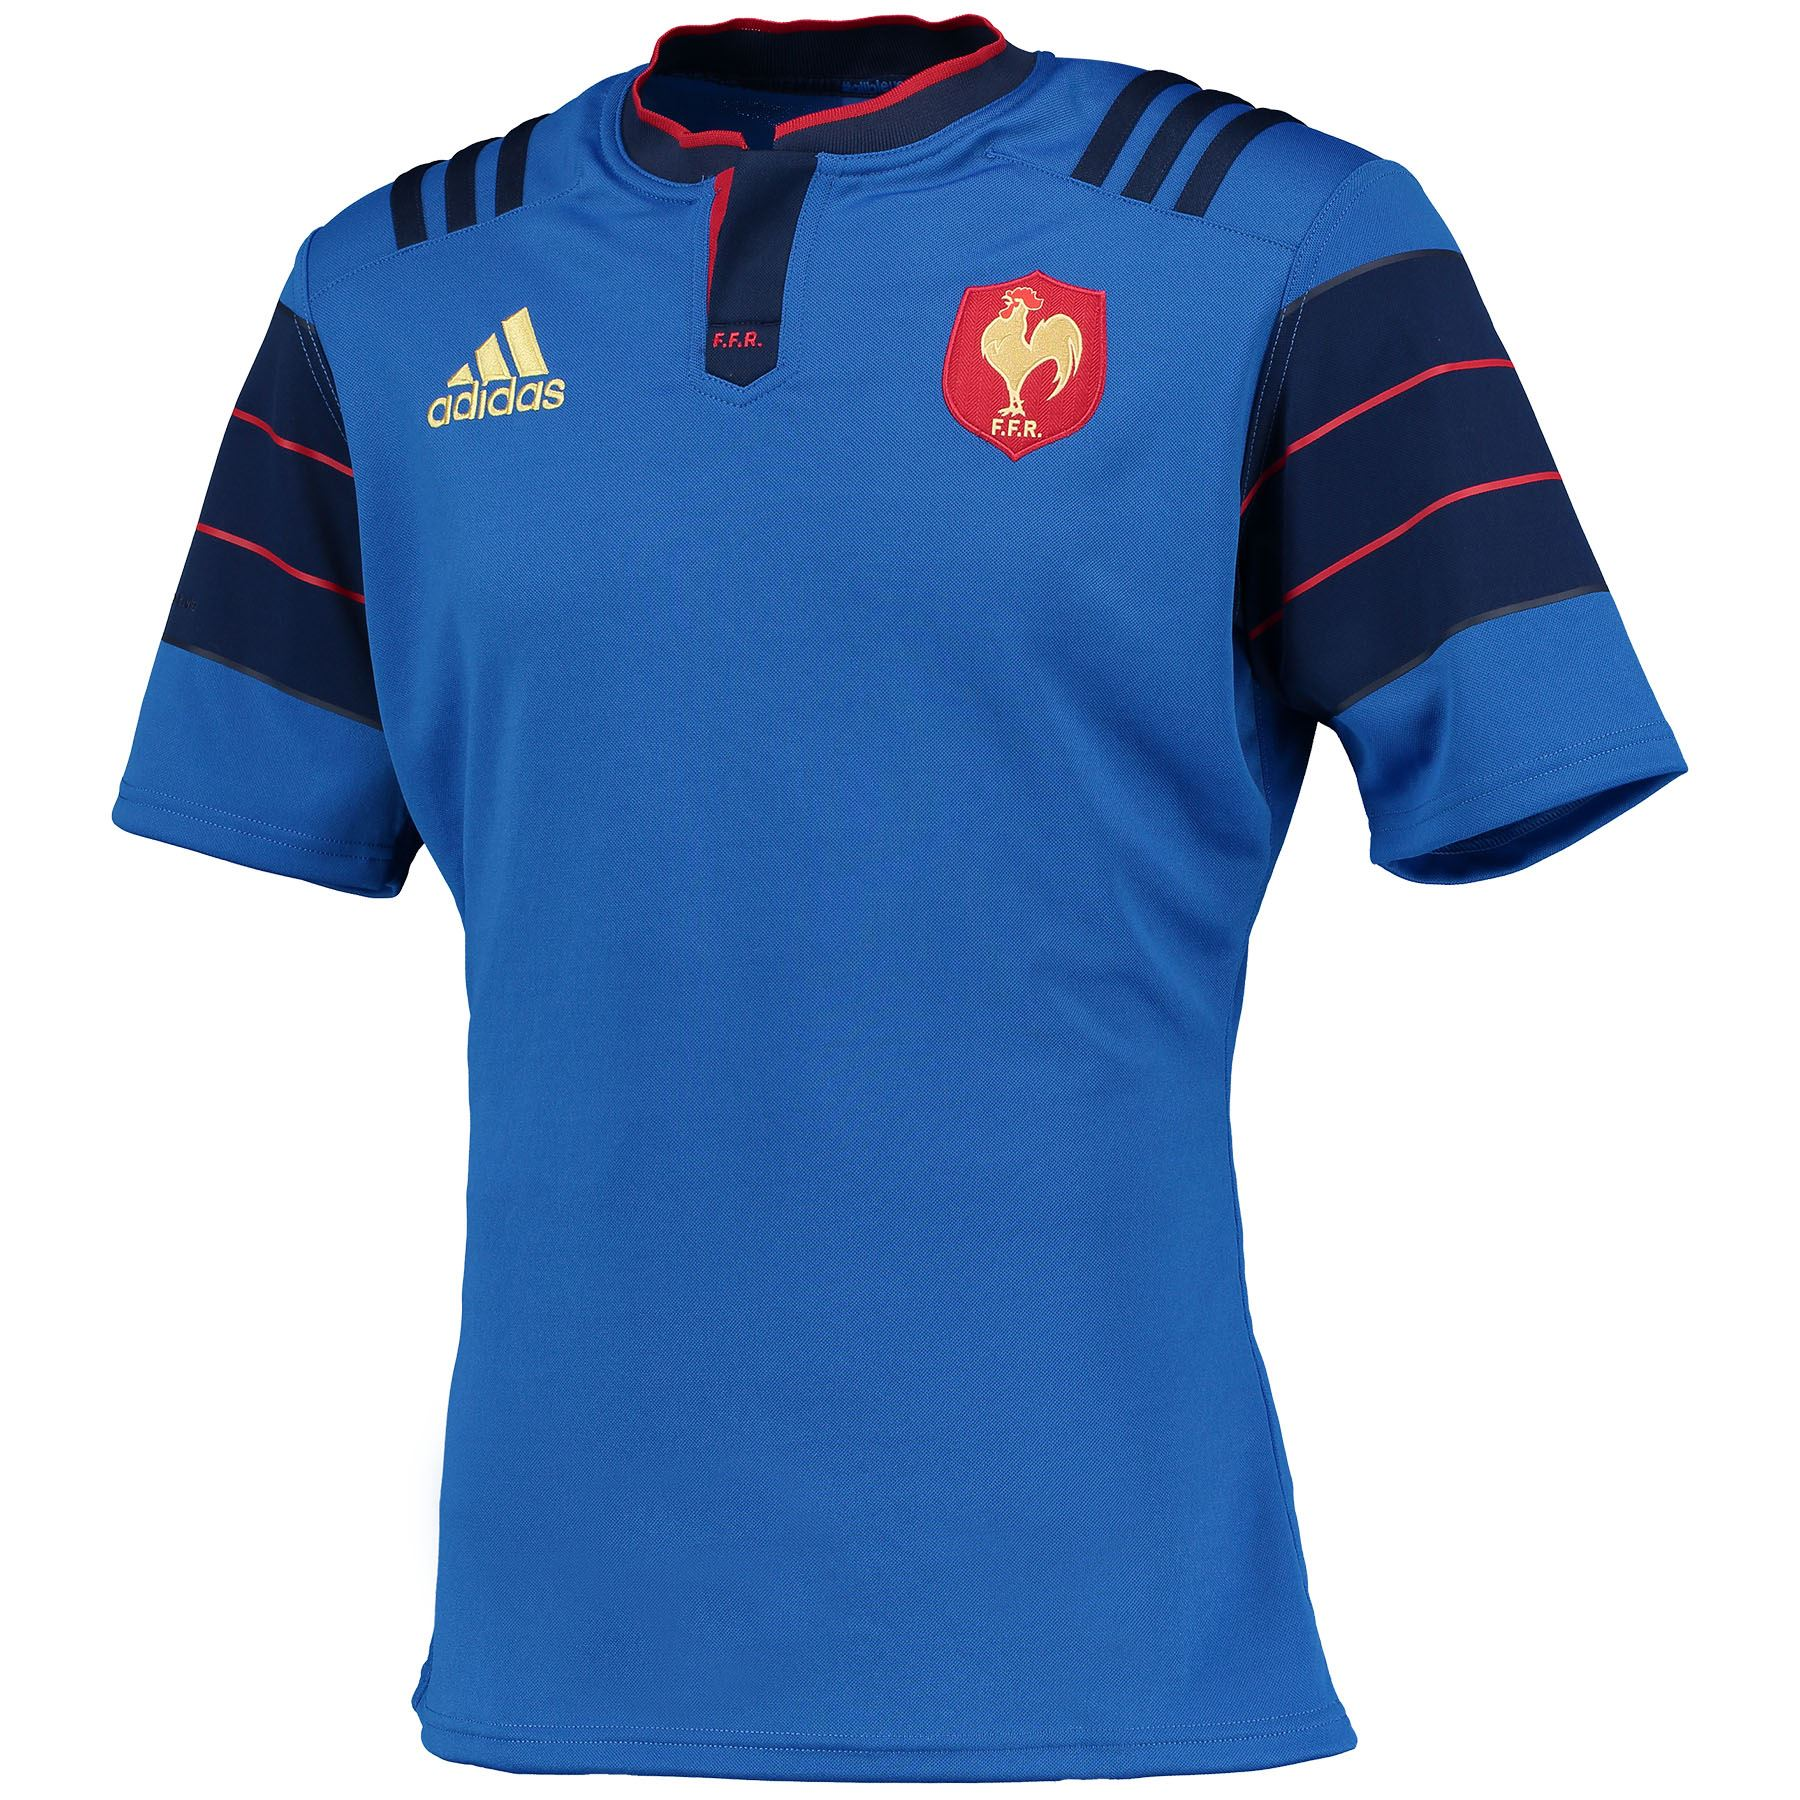 Adidas Rugby Home